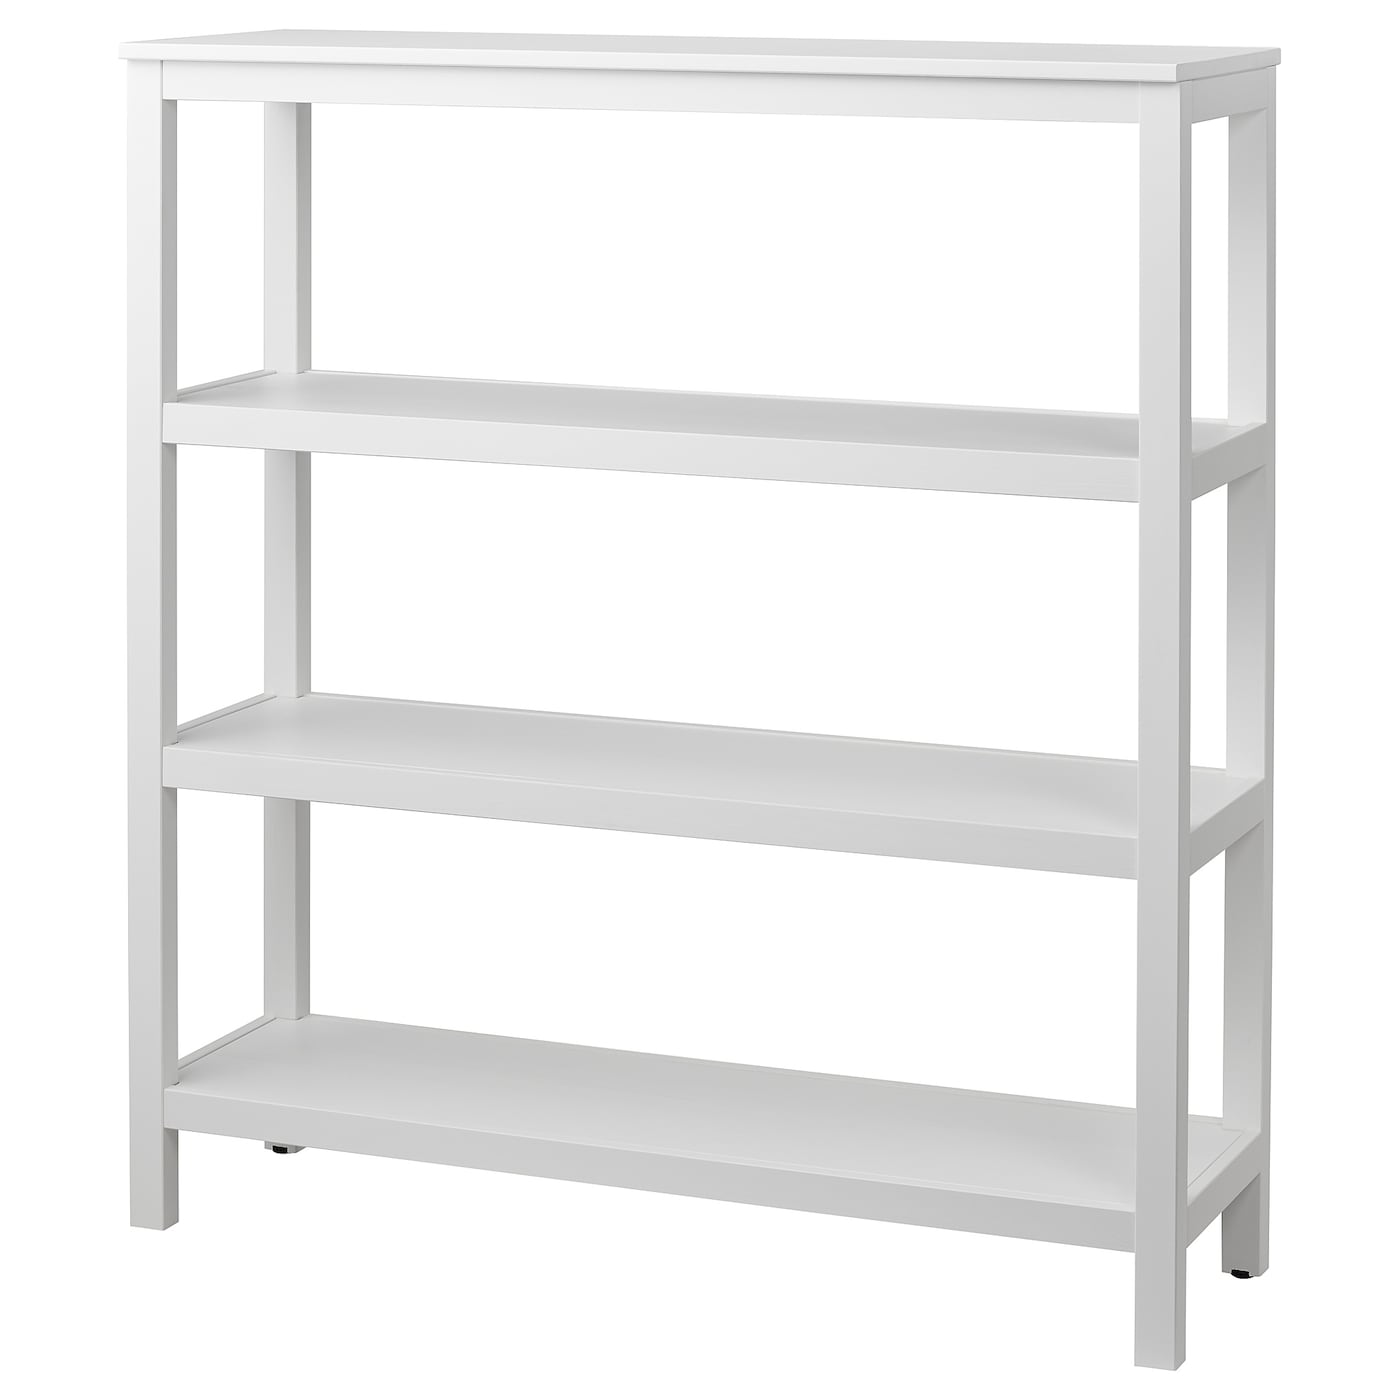 hemnes shelving unit white stain 120x130 cm ikea. Black Bedroom Furniture Sets. Home Design Ideas